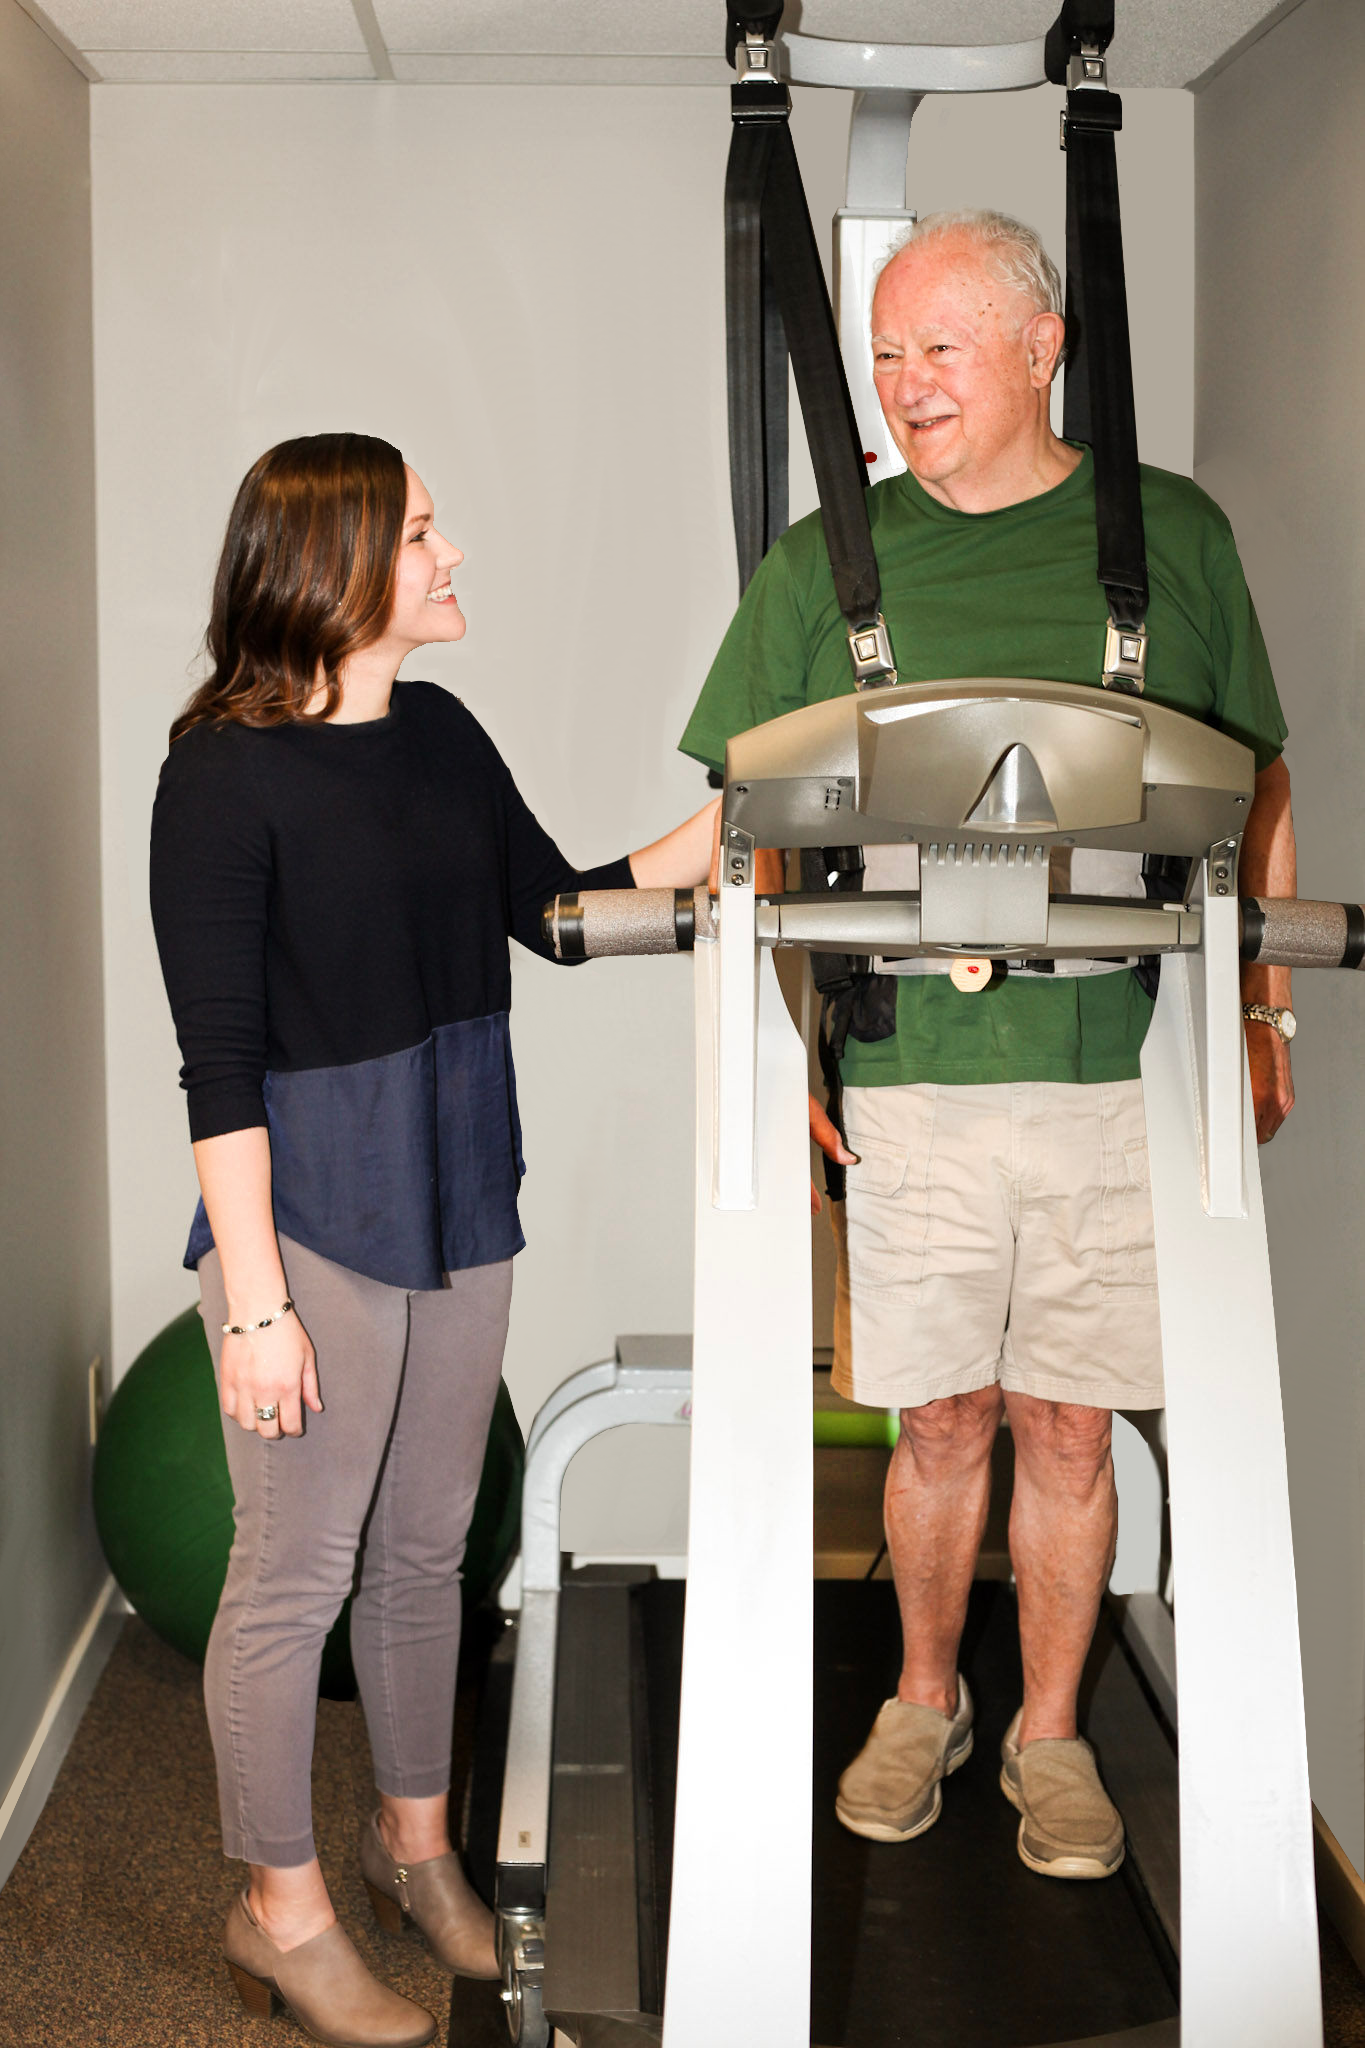 Man being treated on a treadmill.